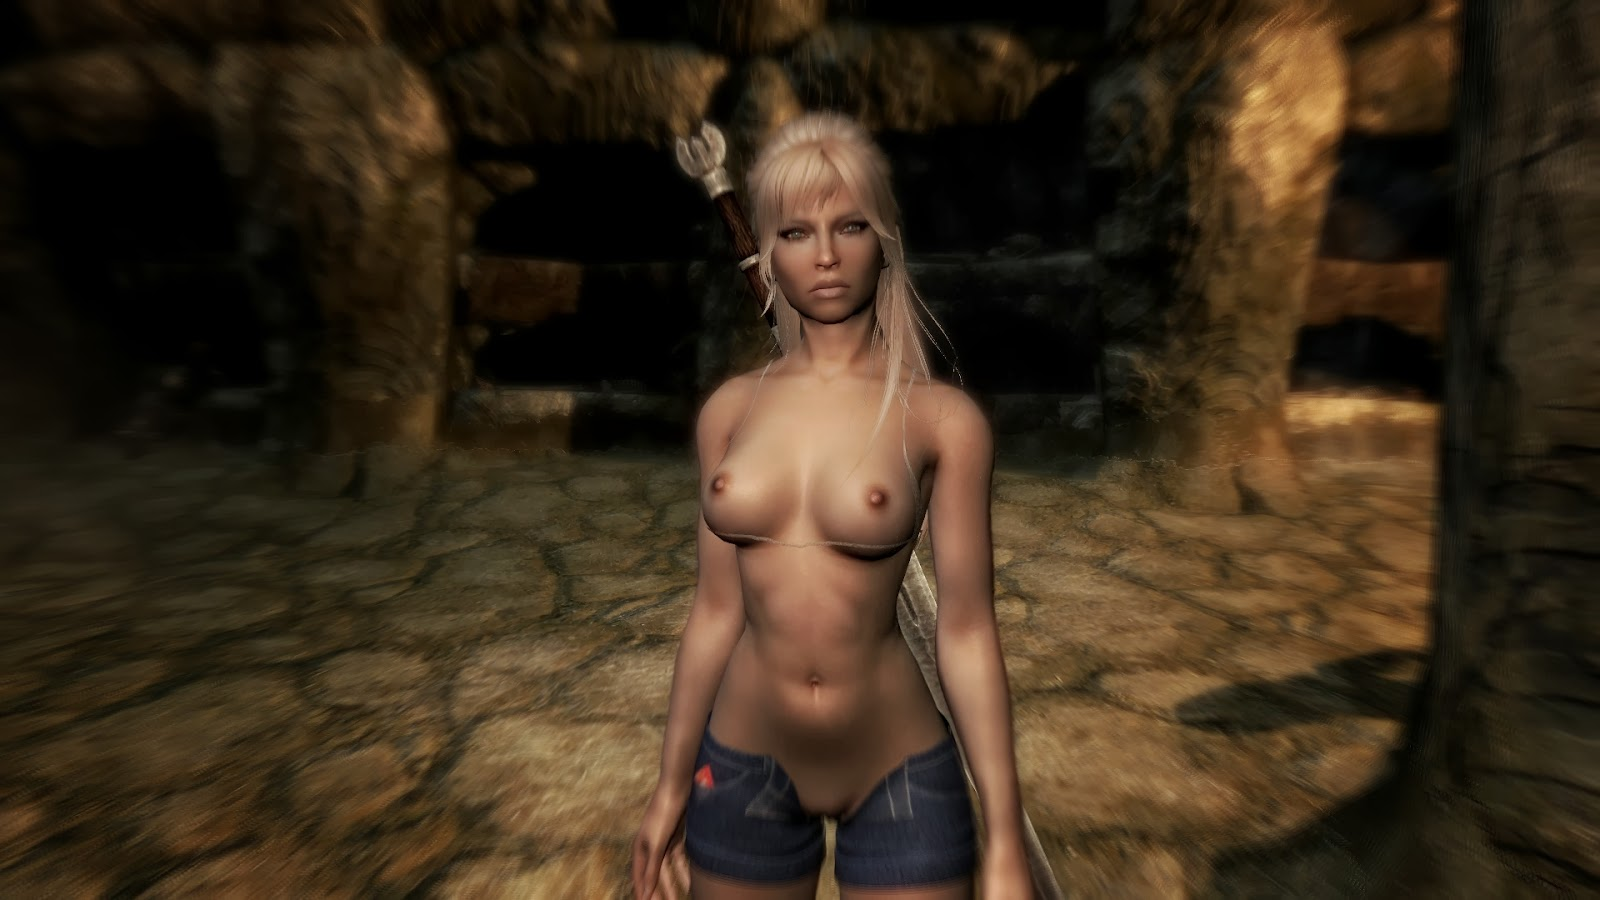 Naked skyrim women pics exposed picture